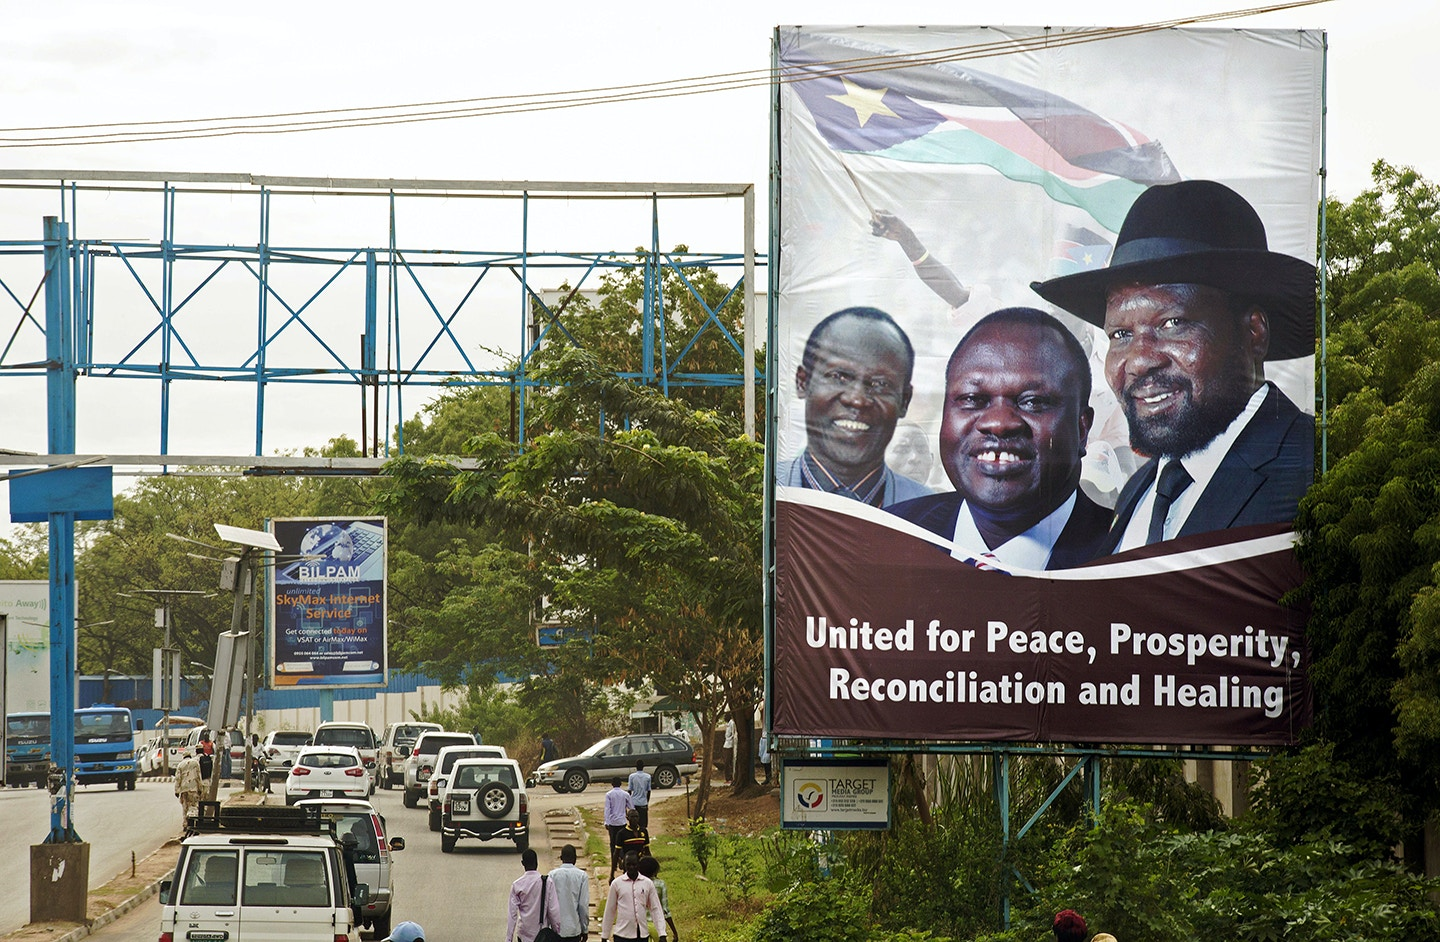 Pedestrians and traffic move past a billboard featuring portraits of the South Sudan's President Salva Kiir (R) and the opposition leader Riek Machar (C) in Juba, South Sudan, on April 14, 2016.<br /> Preparations are on to forge a unity government with Machar taking the post of vice president. Machar's return to the capital Juba is expected on April 18, 2016. It is potentially one of the most significant steps towards peace since a repeatedly broken deal made in August 2015. The two leaders come from the south's two main ethnic groups, Kiir from the Dinka people and Machar from the Nuer. They fought both alongside and against each other during the long and bitter war with Khartoum. Civil war erupted in December 2013 after Kiir accused troops loyal to Machar of staging a failed coup, a claim Machar denies. The pair are now due to set up a transitional unity government.   / AFP / cds / ALBERT GONZALEZ FARRAN        (Photo credit should read ALBERT GONZALEZ FARRAN/AFP/Getty Images)